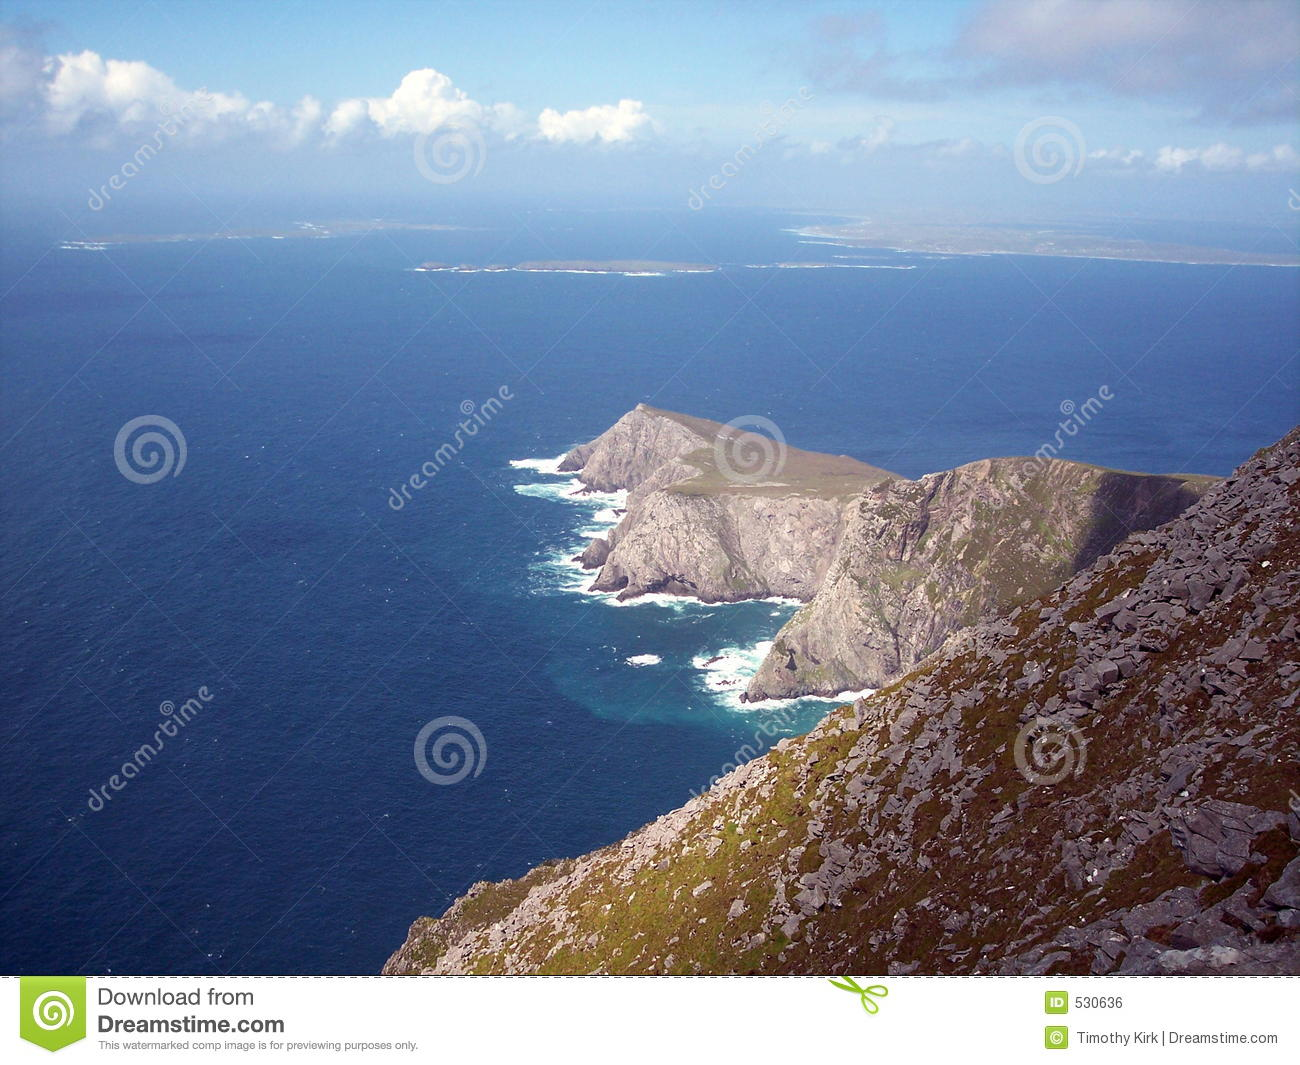 golden colorado map with Royalty Free Stock Image Atop Achill Head Image530636 on Craig likewise Buena Vista Colorado further 50 States together with Print furthermore Royalty Free Stock Image Atop Achill Head Image530636.